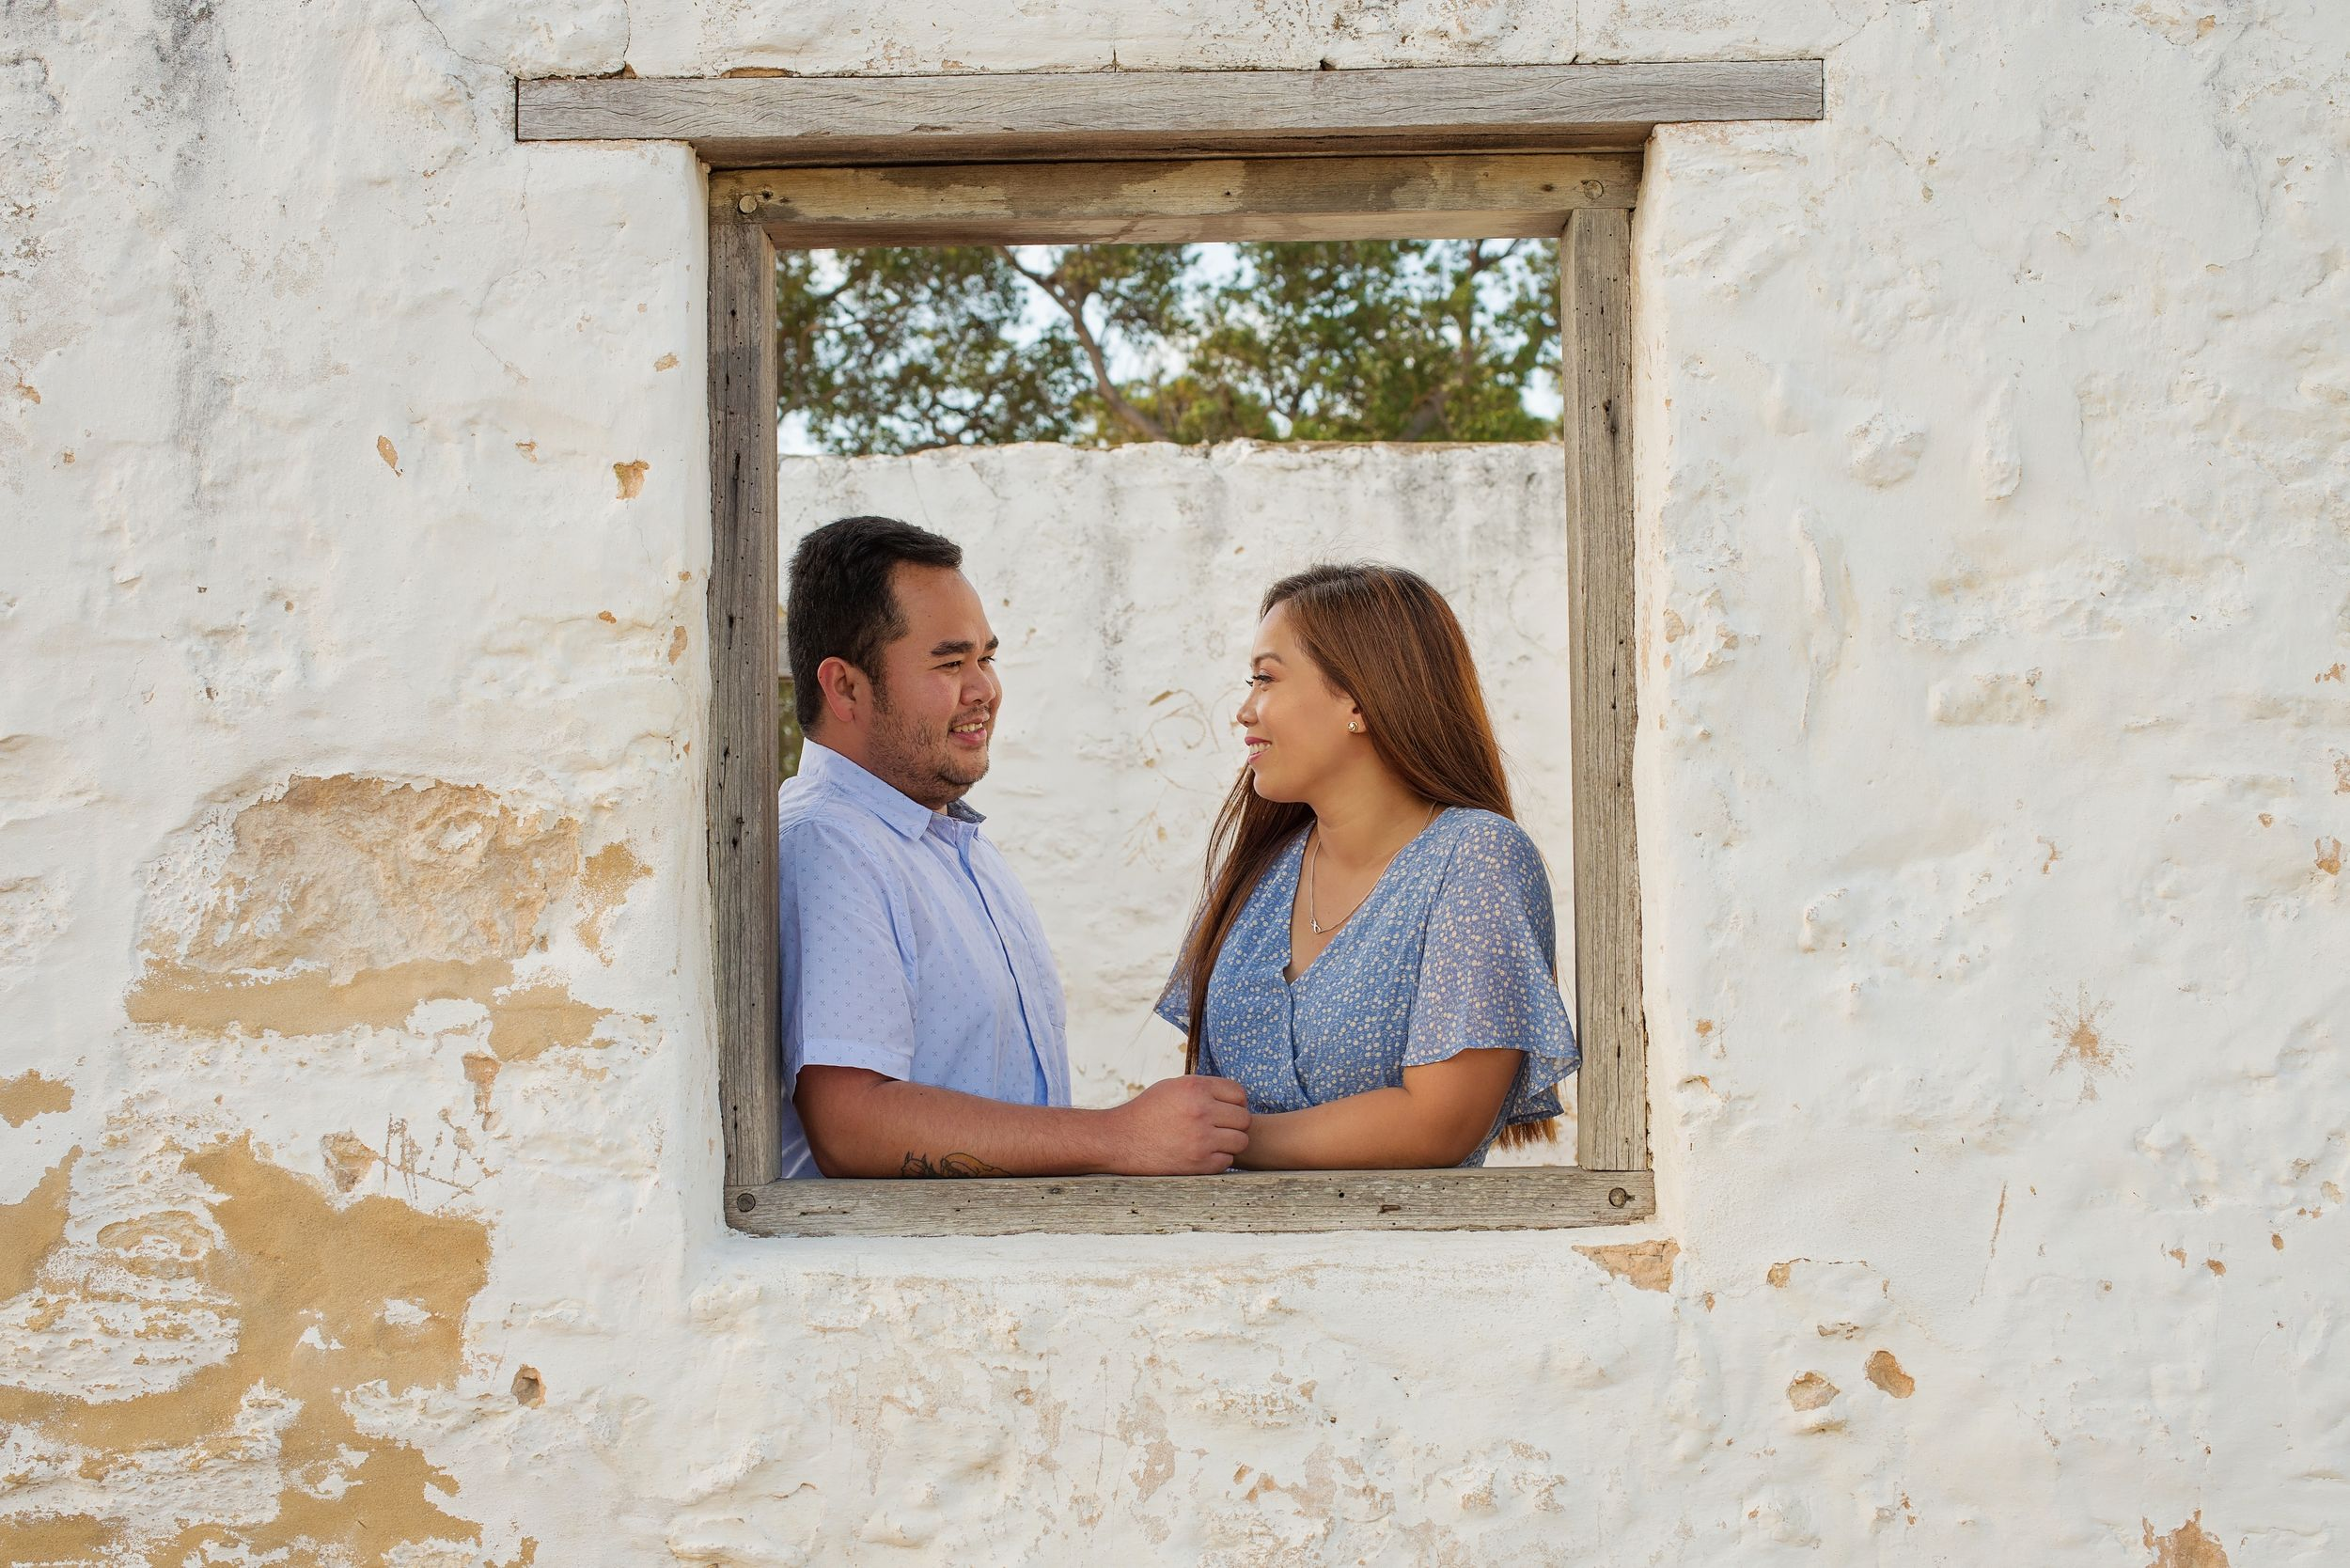 couple facing eachother standing in a window frame